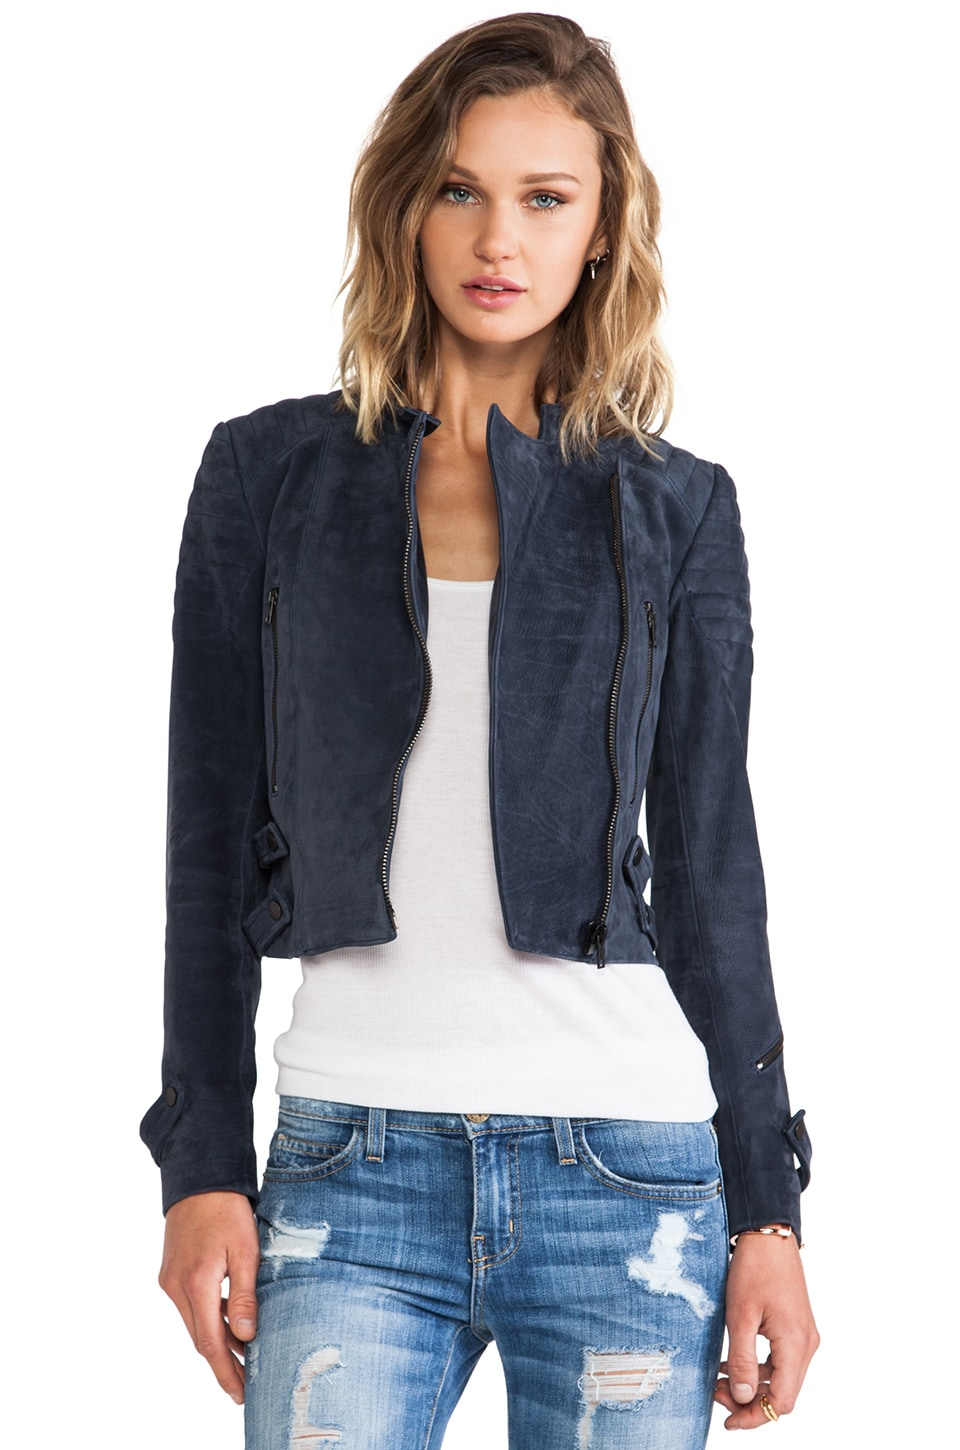 A.L.C. Jake Leather Jacket in Navy